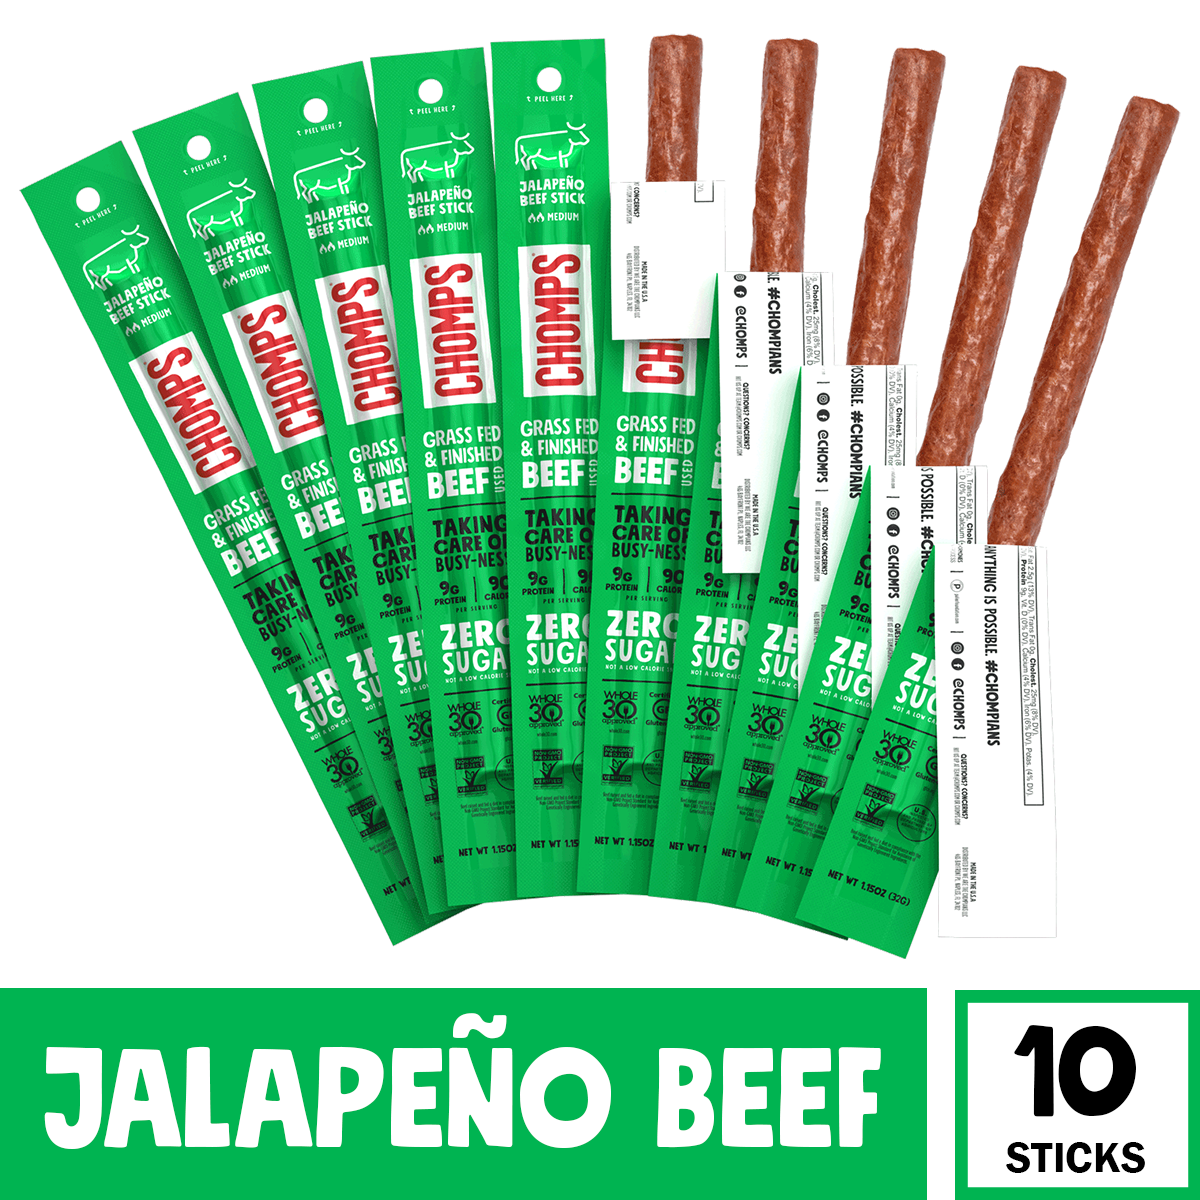 Chomps Grass Fed Jalapeno Beef, 10 Pack